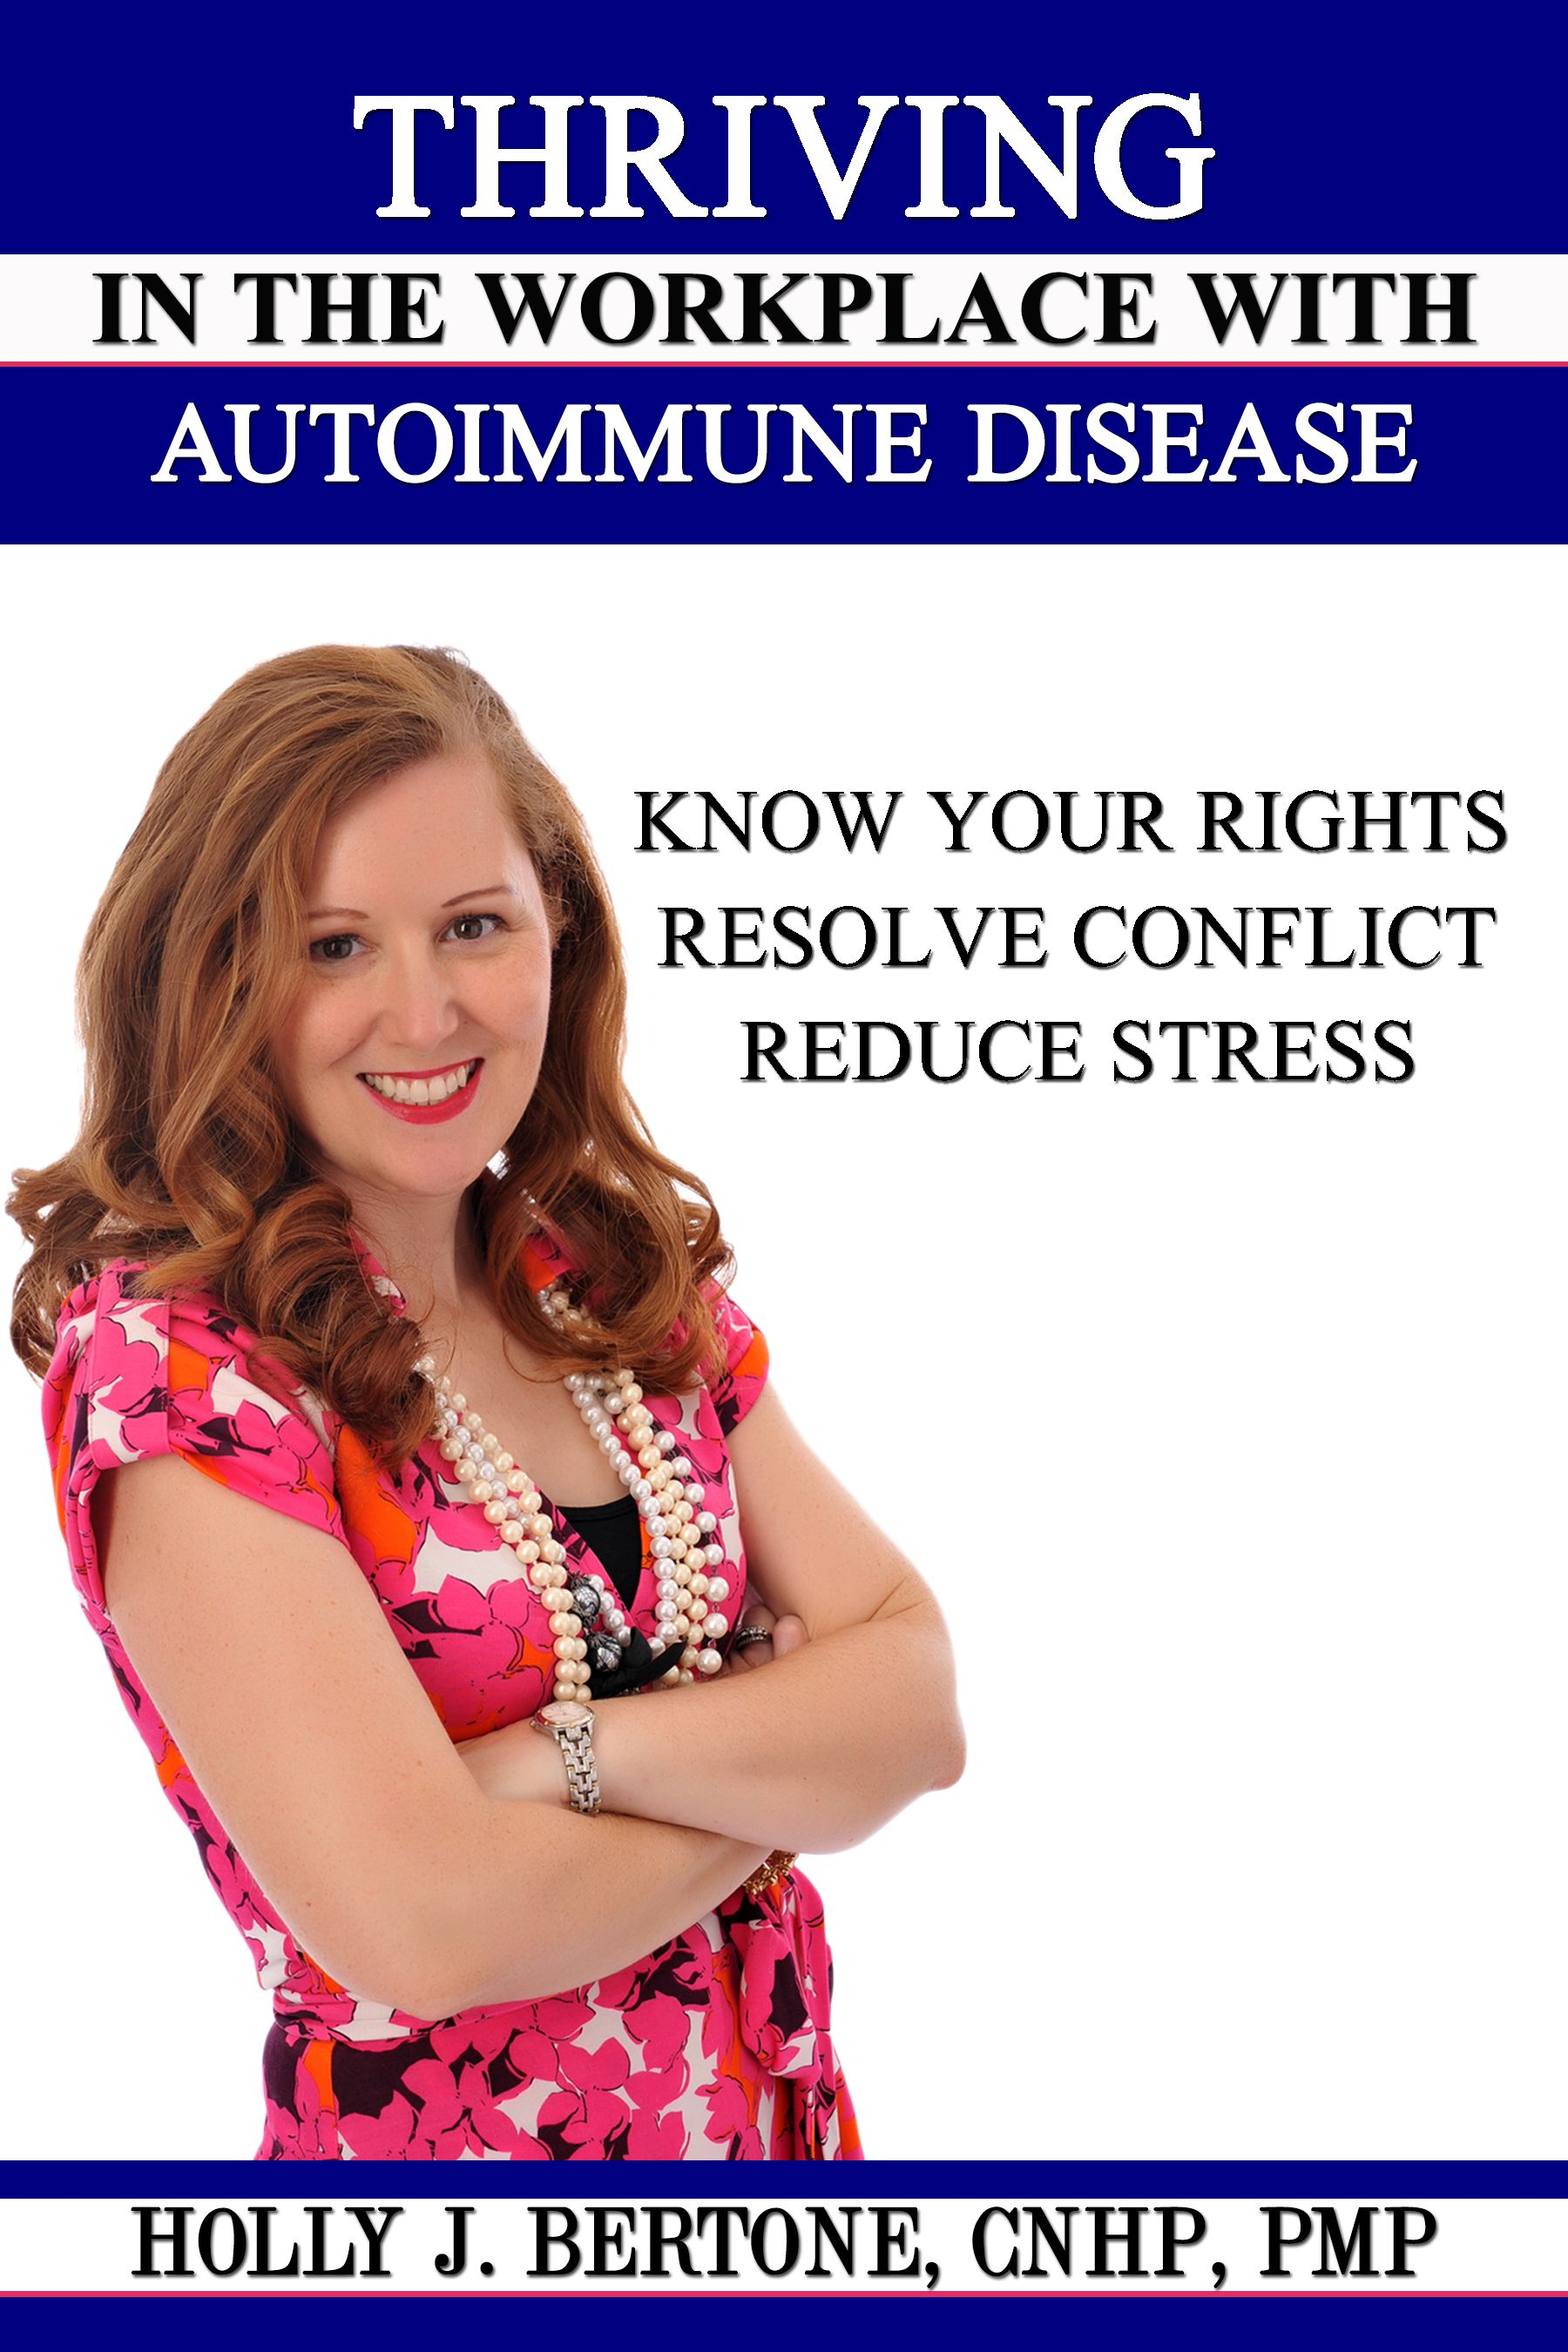 Top 25 Workplace Accommodations for Individuals with Autoimmune Conditions – Pink Fortitude, LLC cdd1ae059150c7926770cfda21ae9789